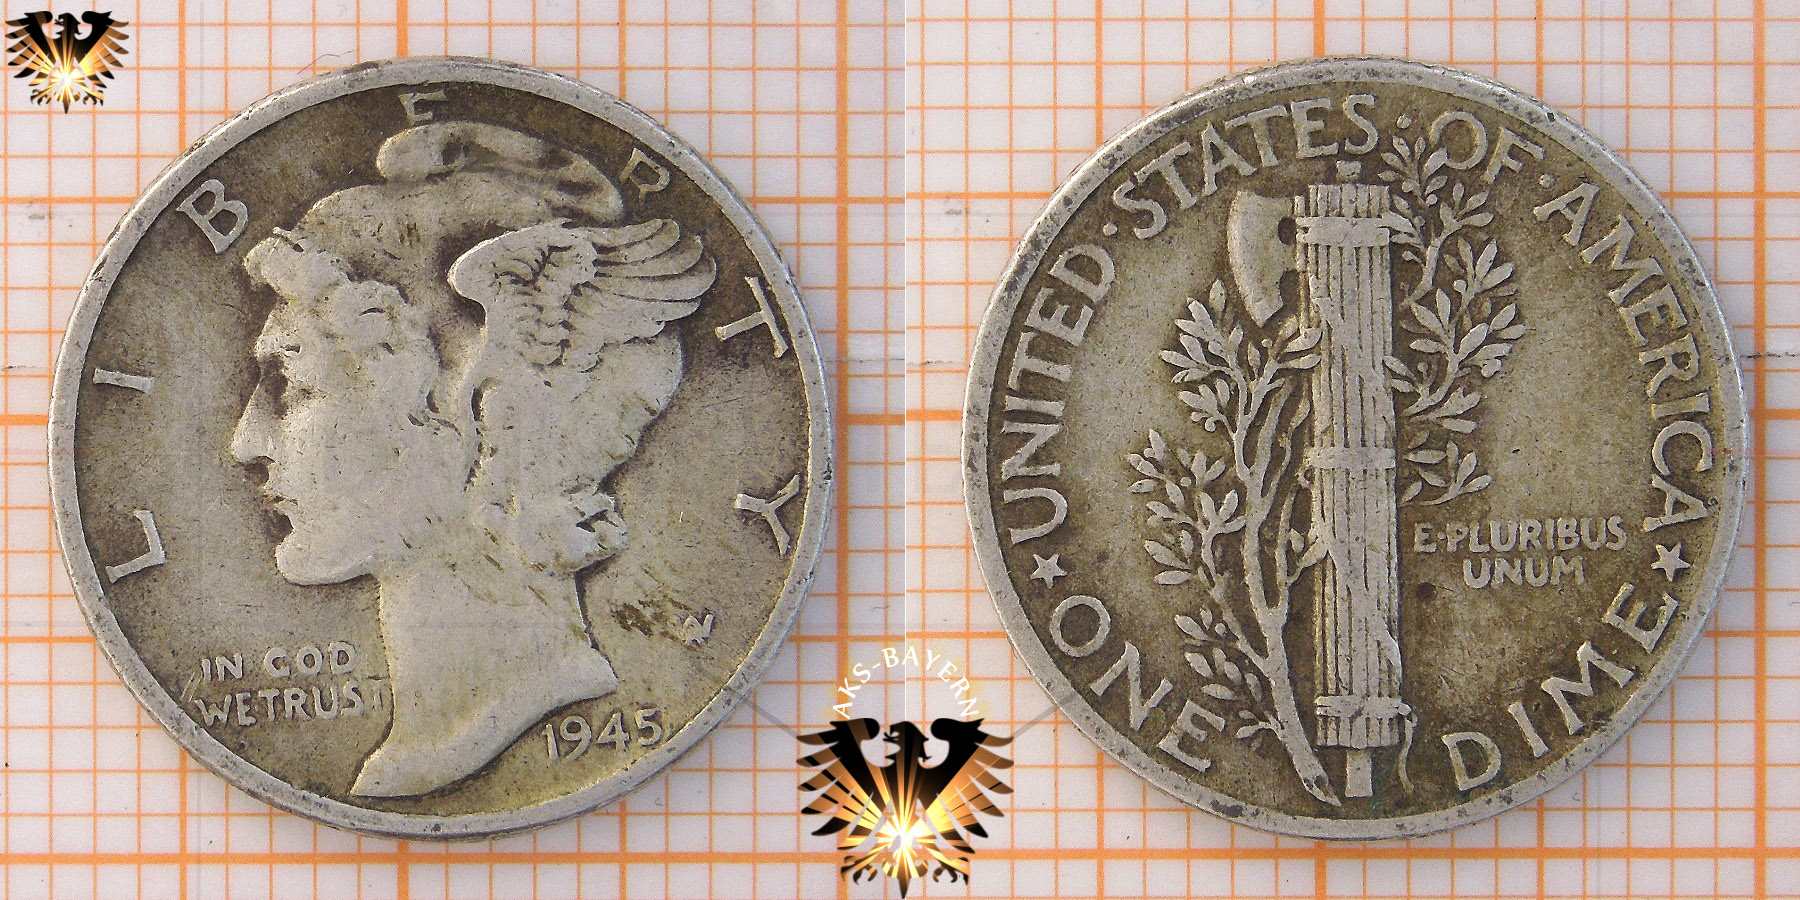 10 Cent 1 Dime Usa 1945 Mercury Dime 1916 1945